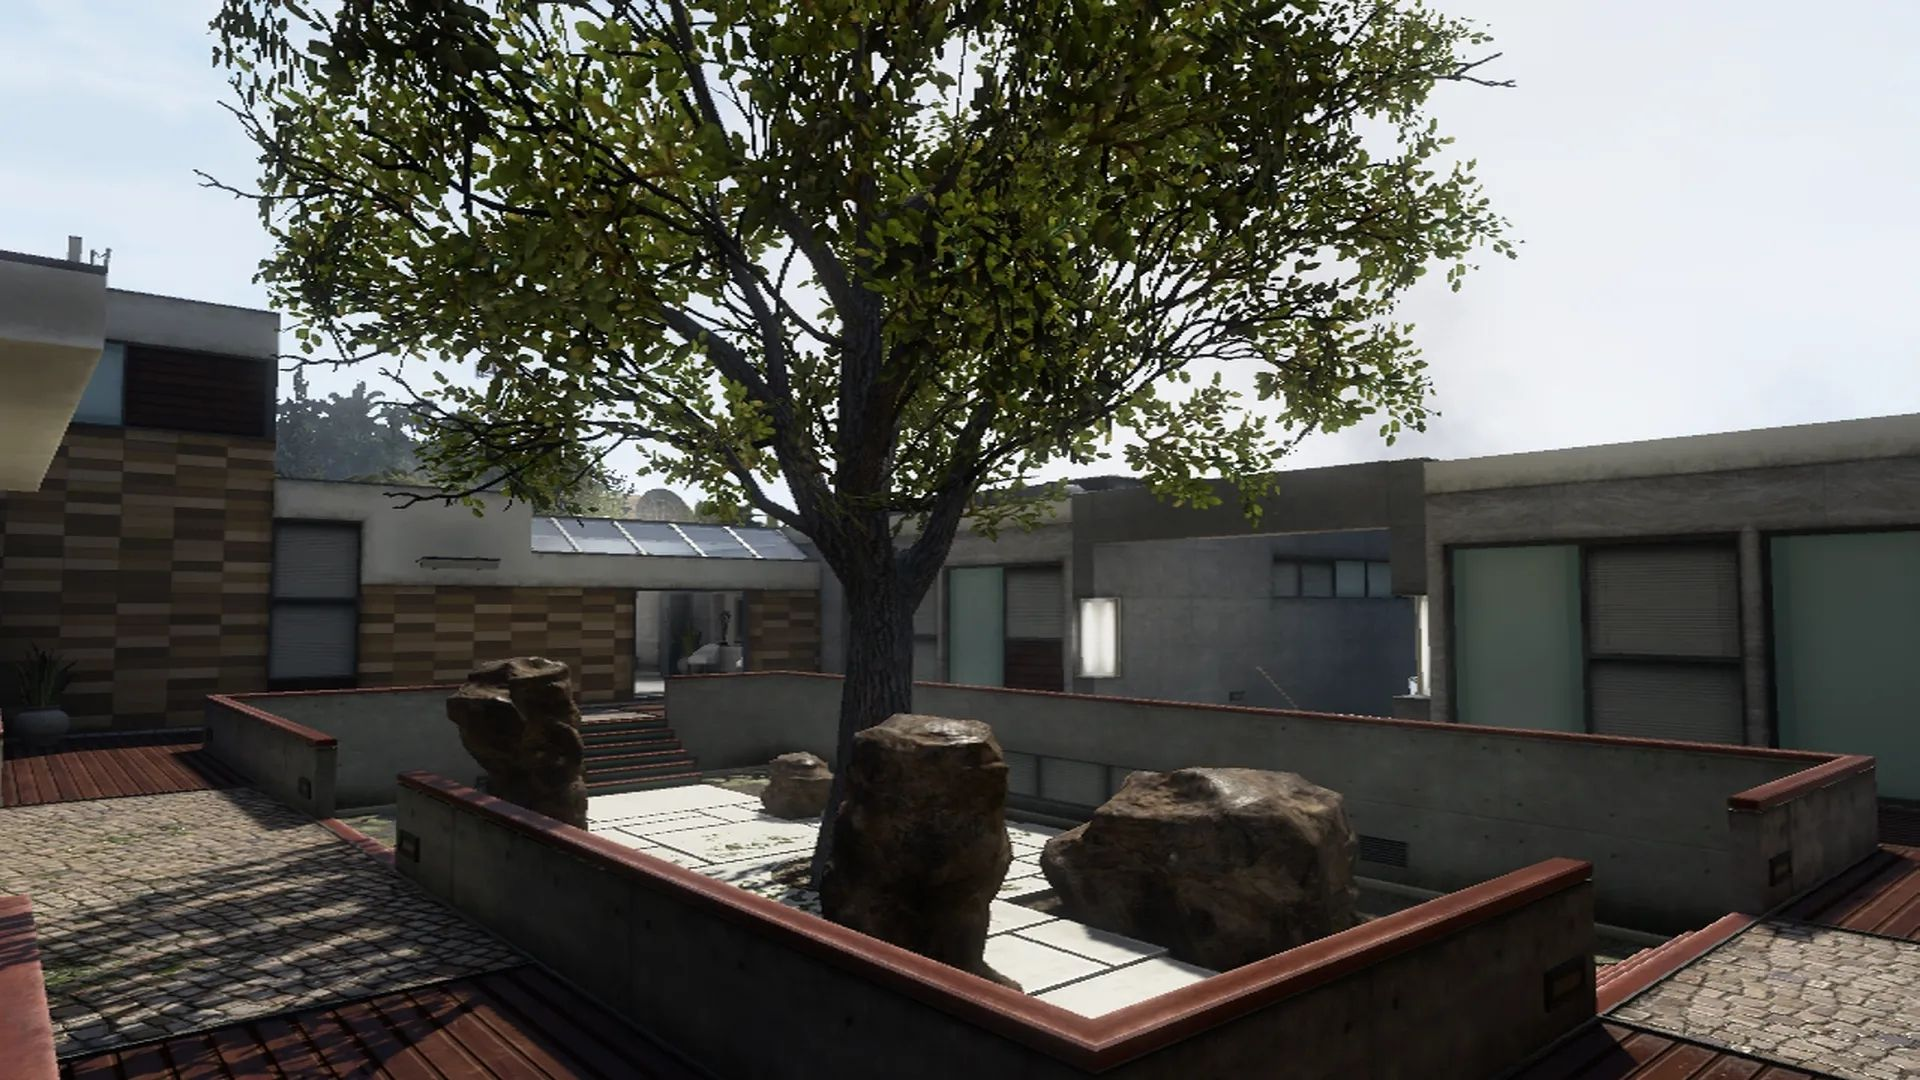 raid map in call of duty